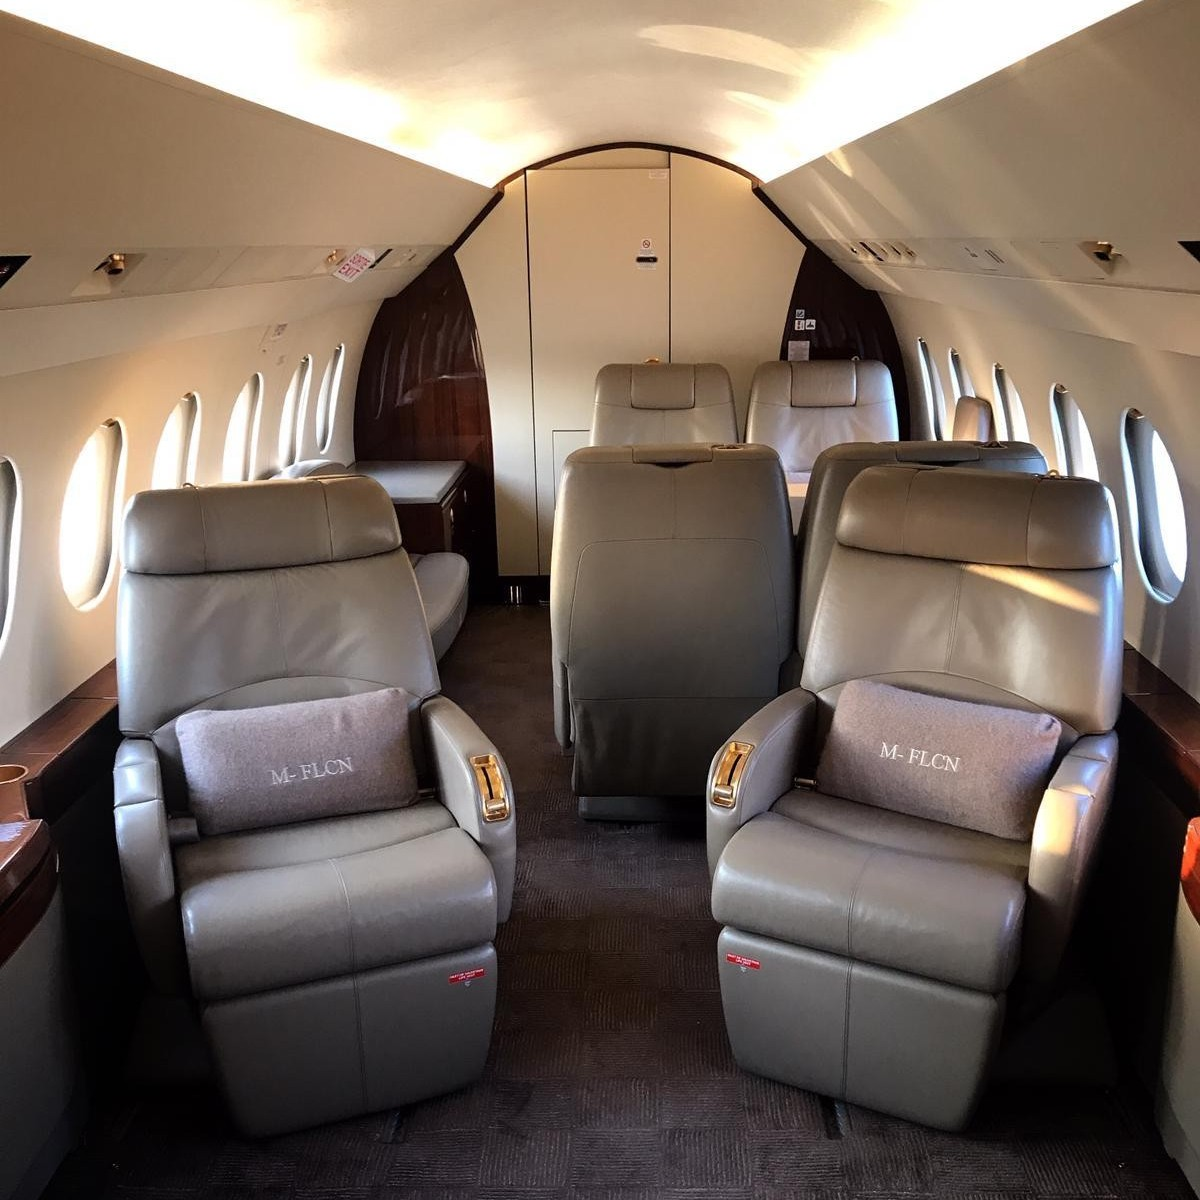 Huge private jets with a twin bed bedroom, master bedroom and couch